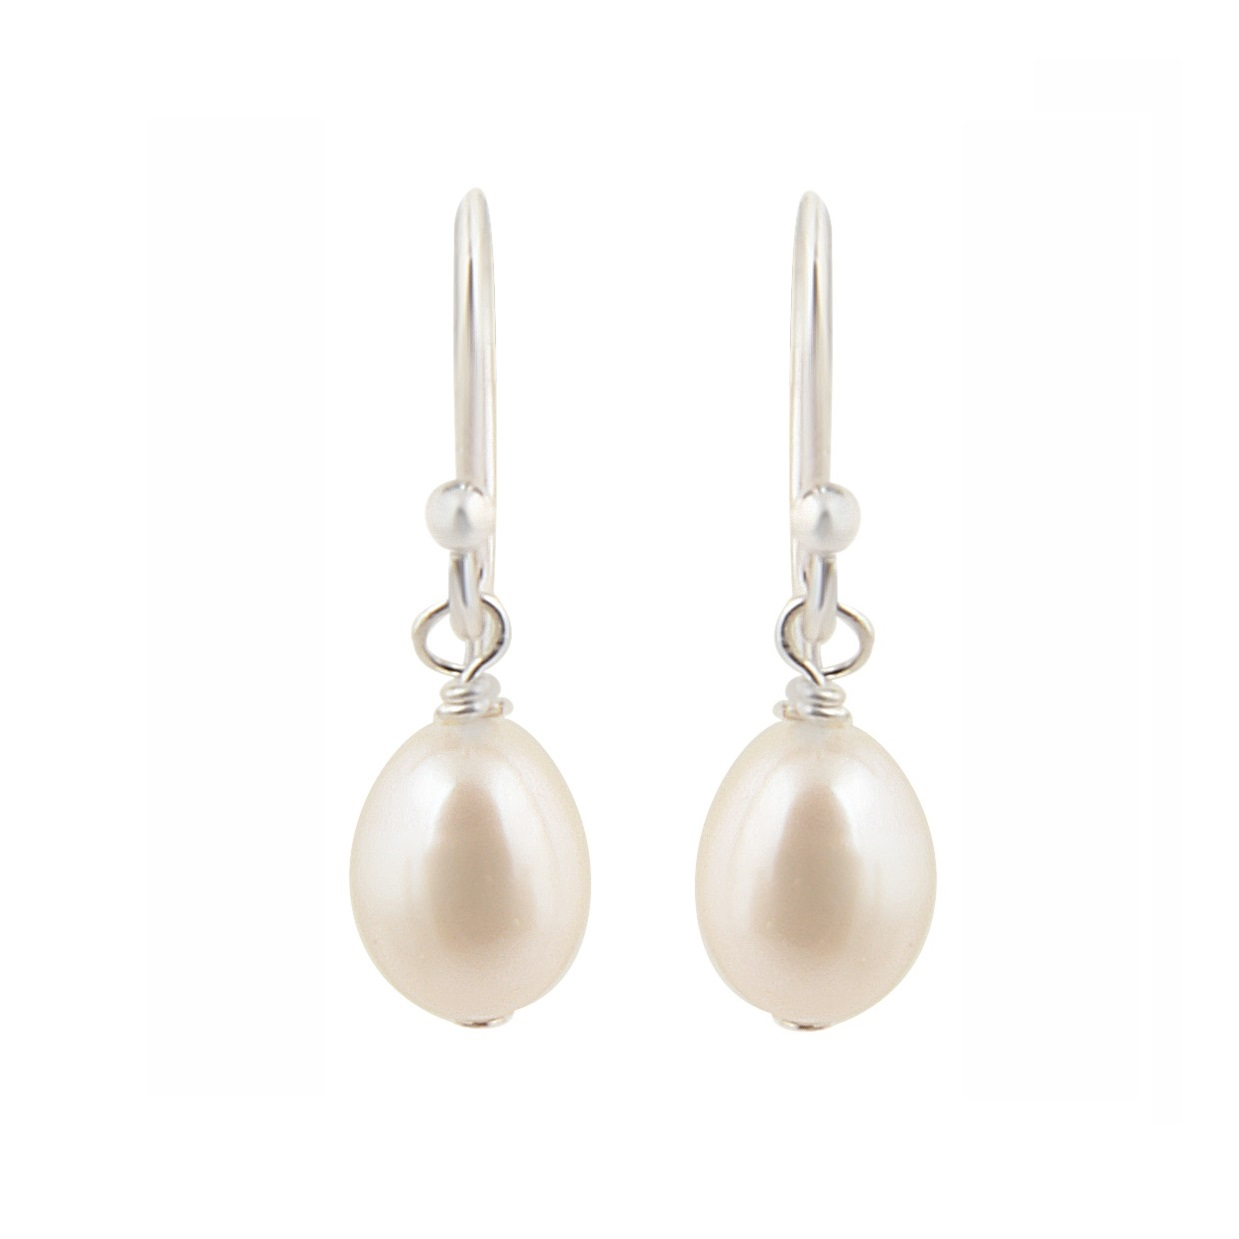 Blossom I earrings £26 Chez Bec